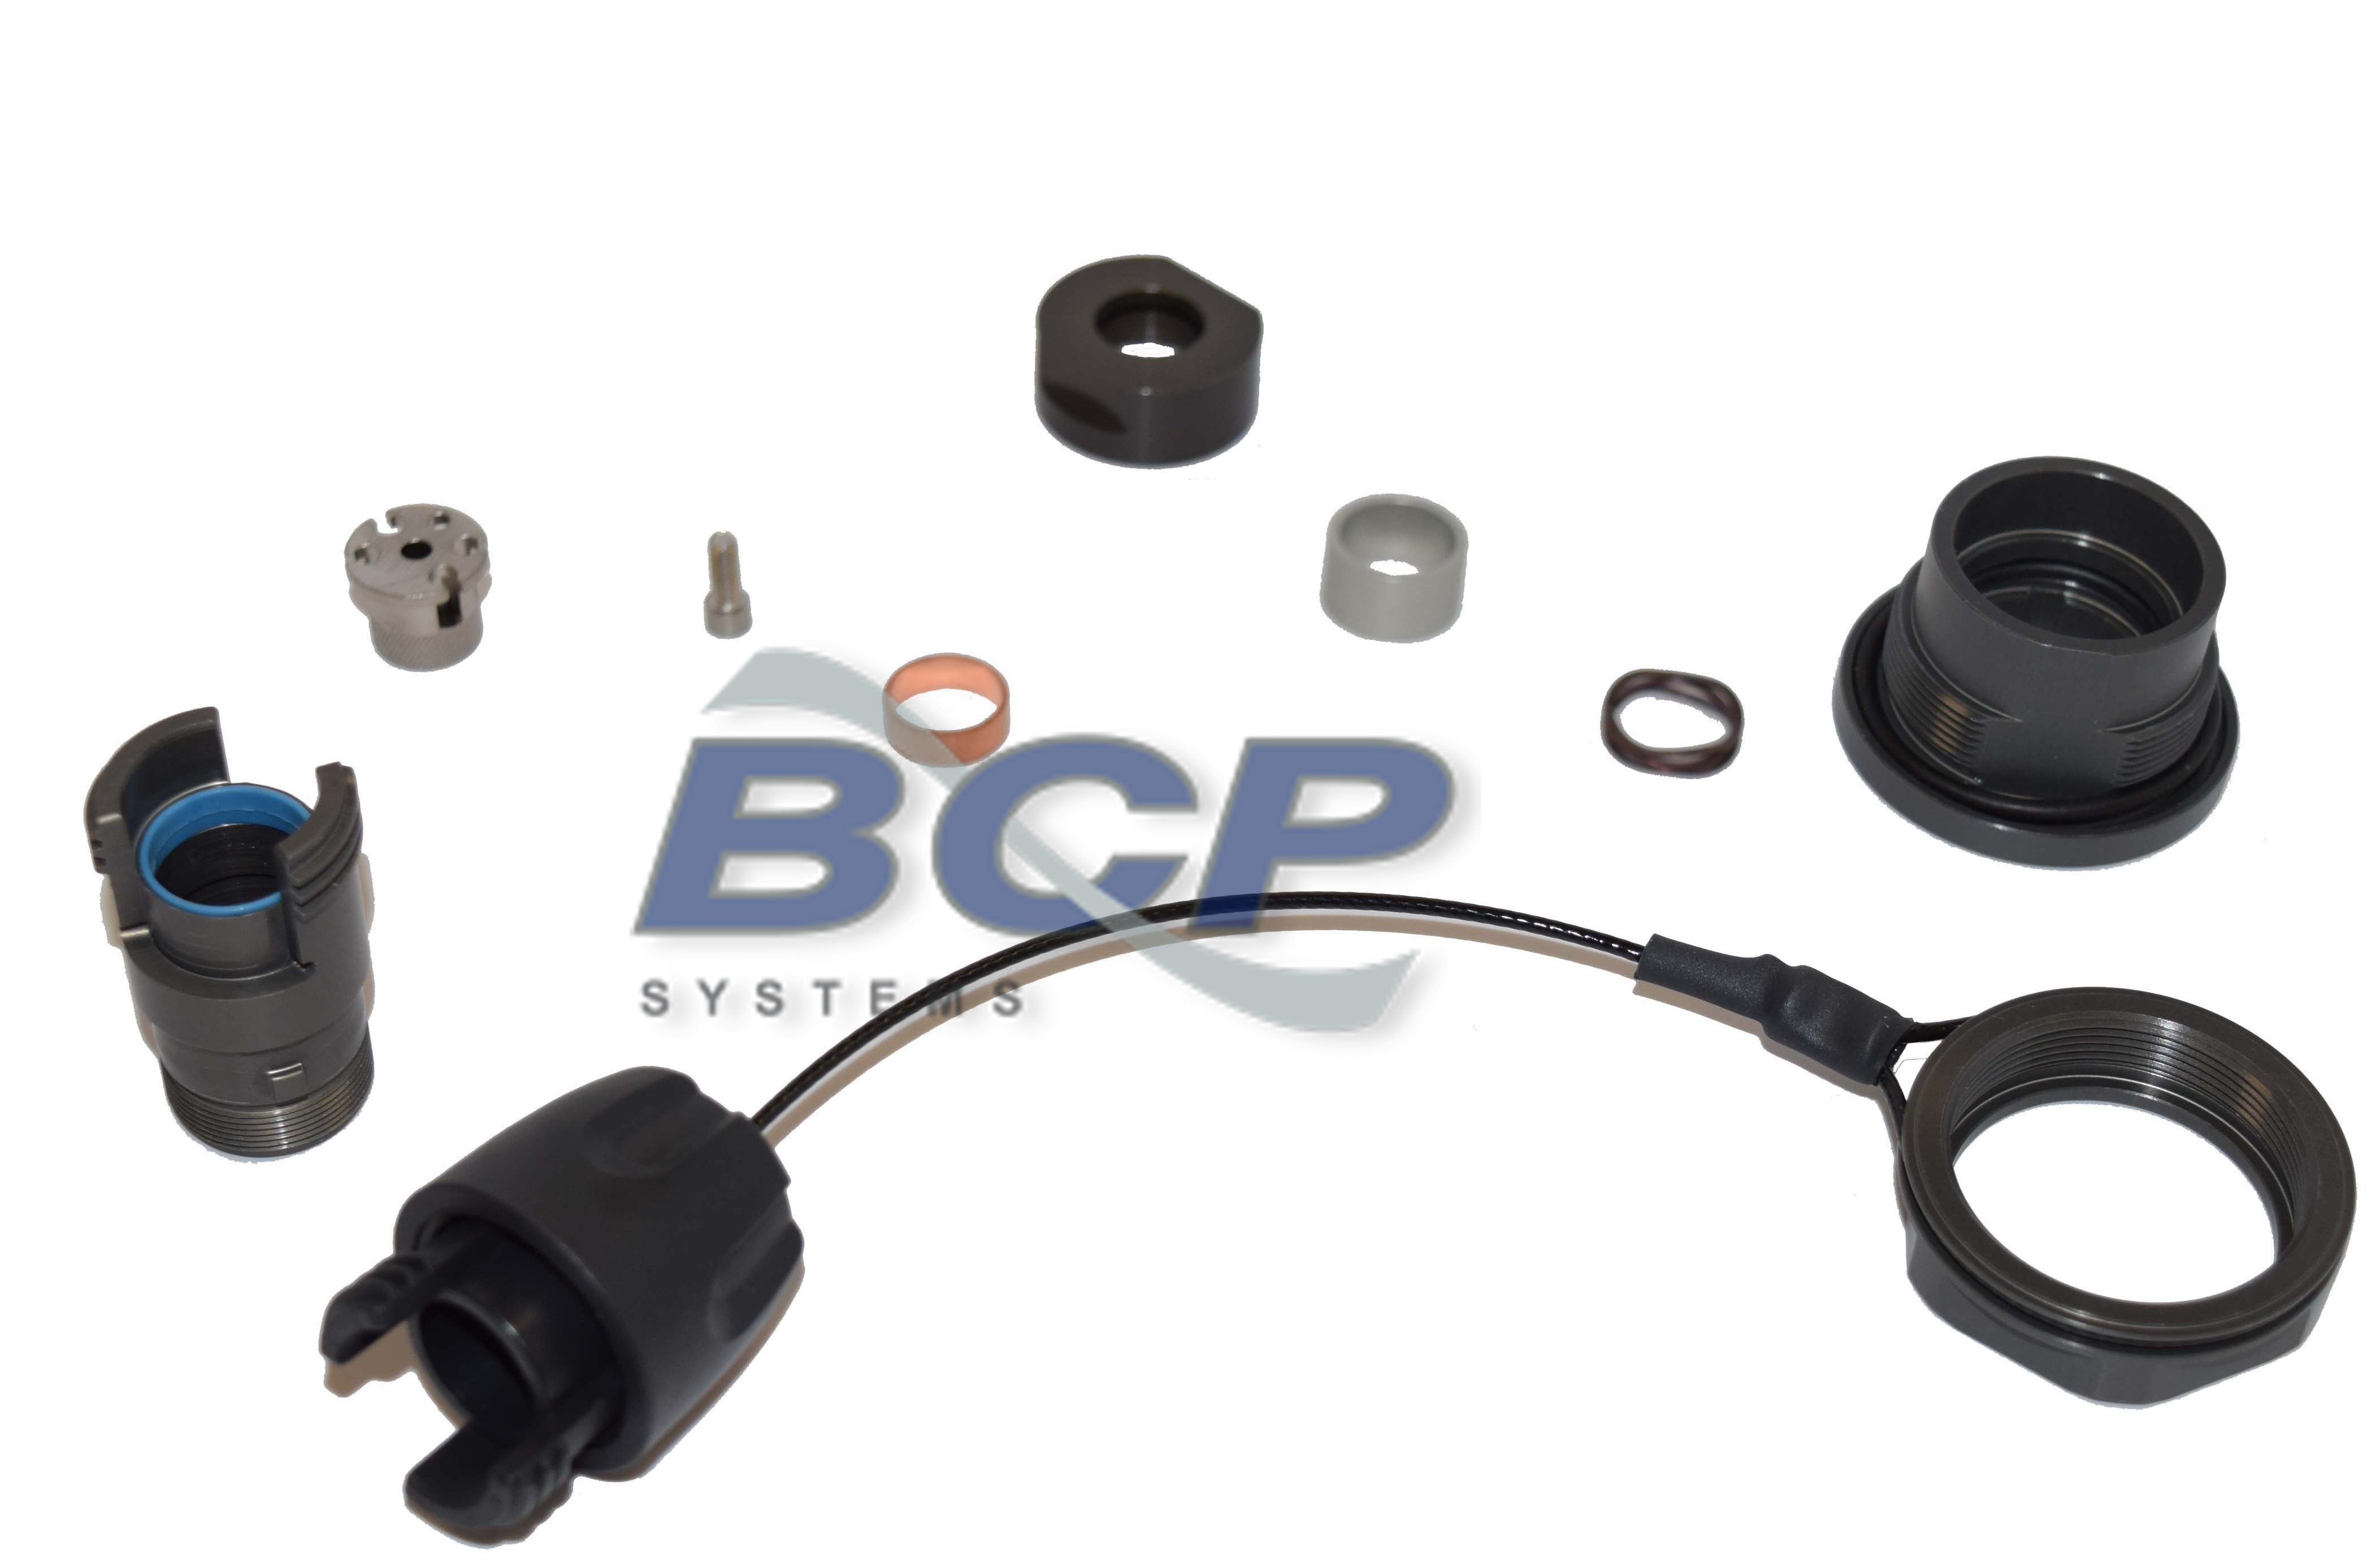 Bcp Systems Specialized Wire Harness Assembly And Repair Services Aluminum Wiring Connector Shell Kit44 Pro Beam Jr D Hole Lp Bulkhead